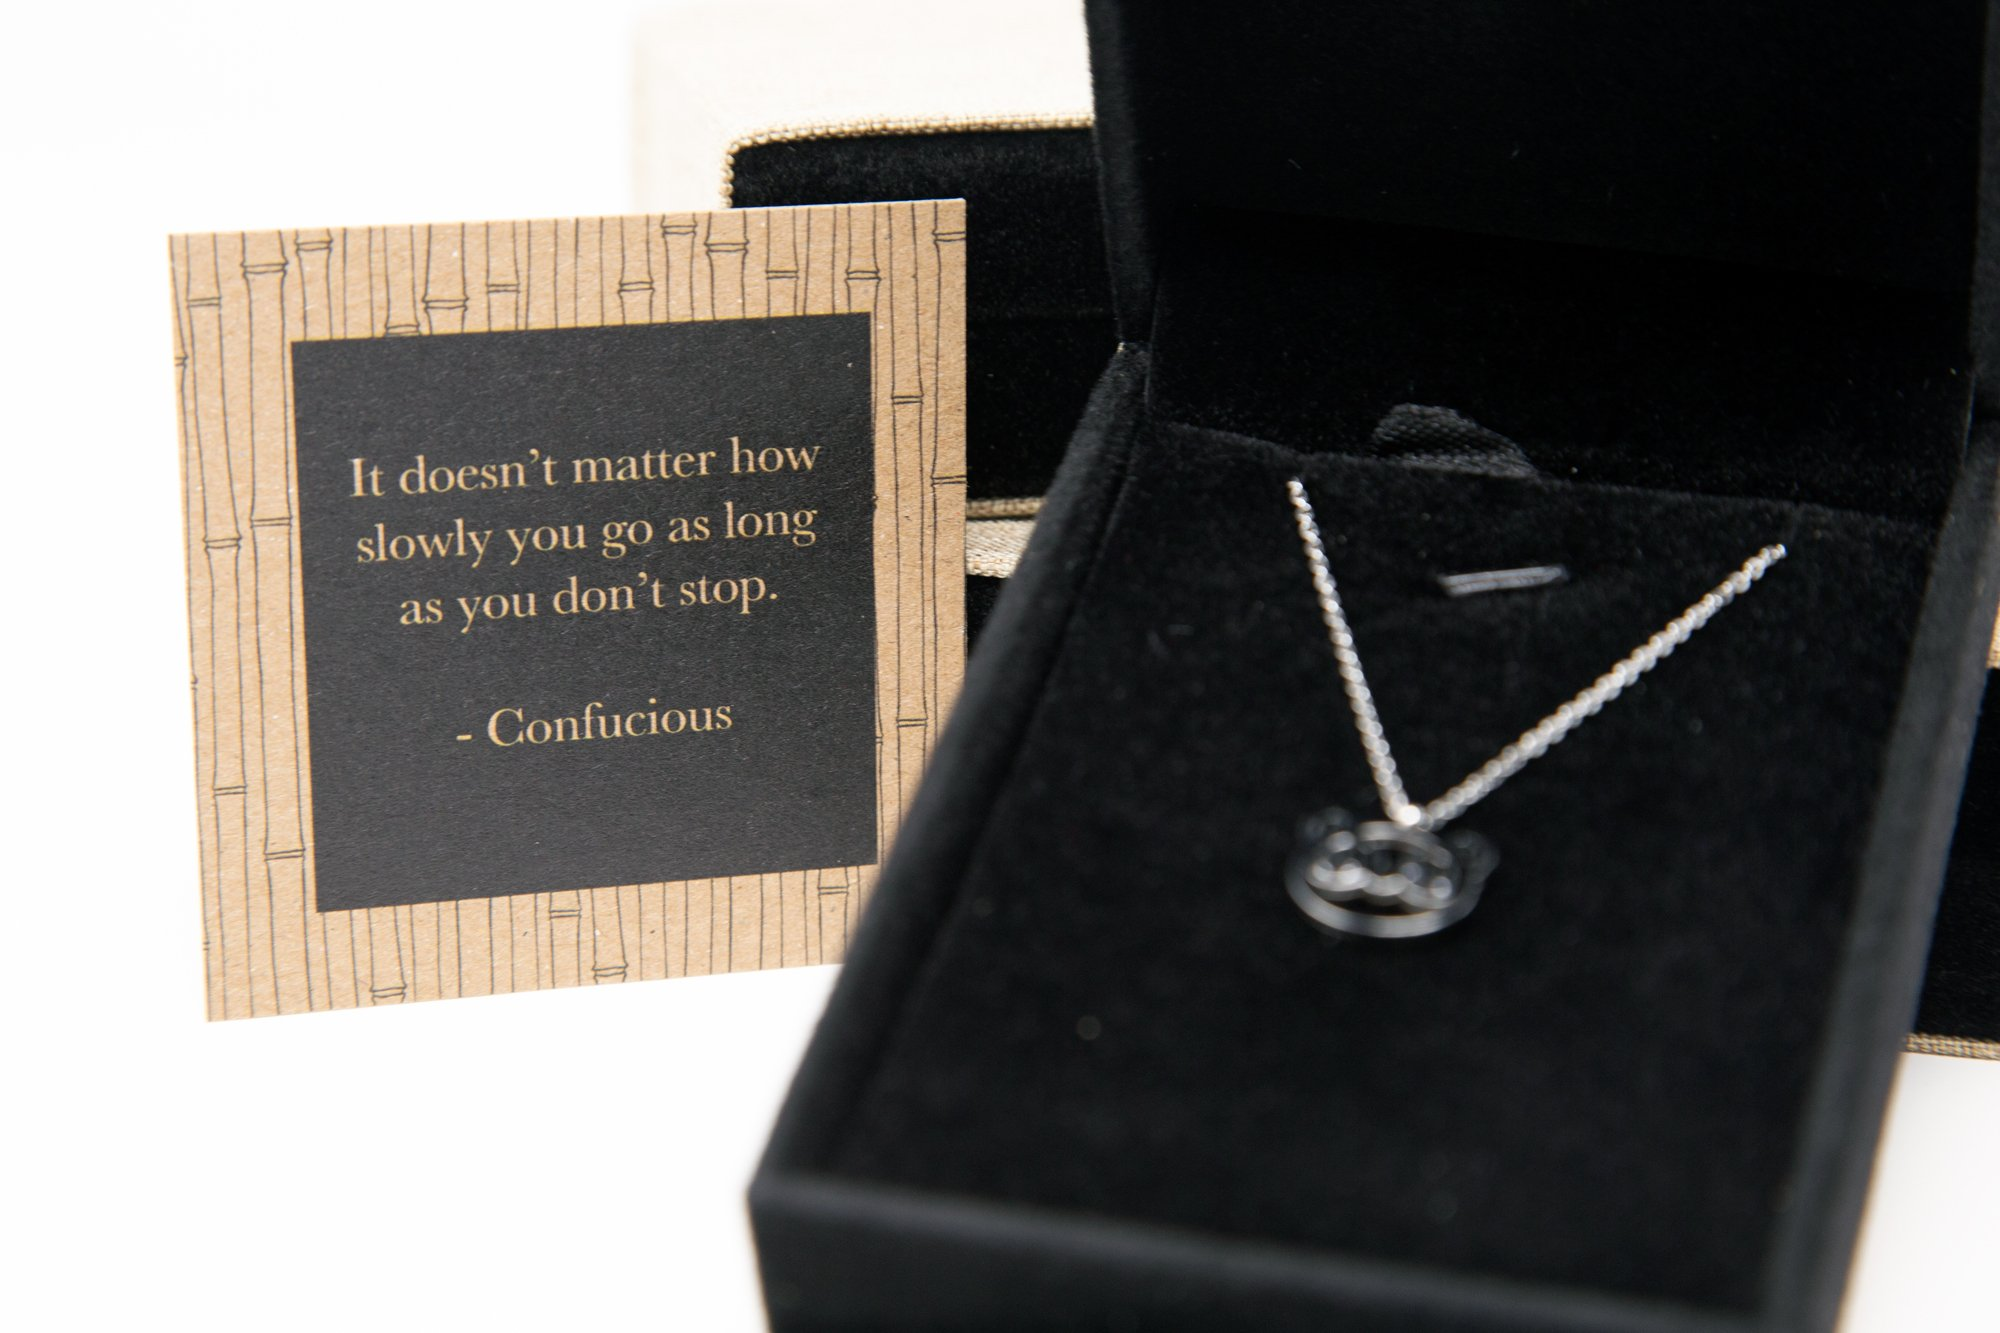 Inspirational Necklaces for Women - Panda Charm Pendant with Unique Gift Box and Inspiring Mantra Quote Card - Jewelry Stainless Steel for Women Necklace Charm - College Graduation Gifts for Her by Classic Inspirational Jewelry (Image #5)